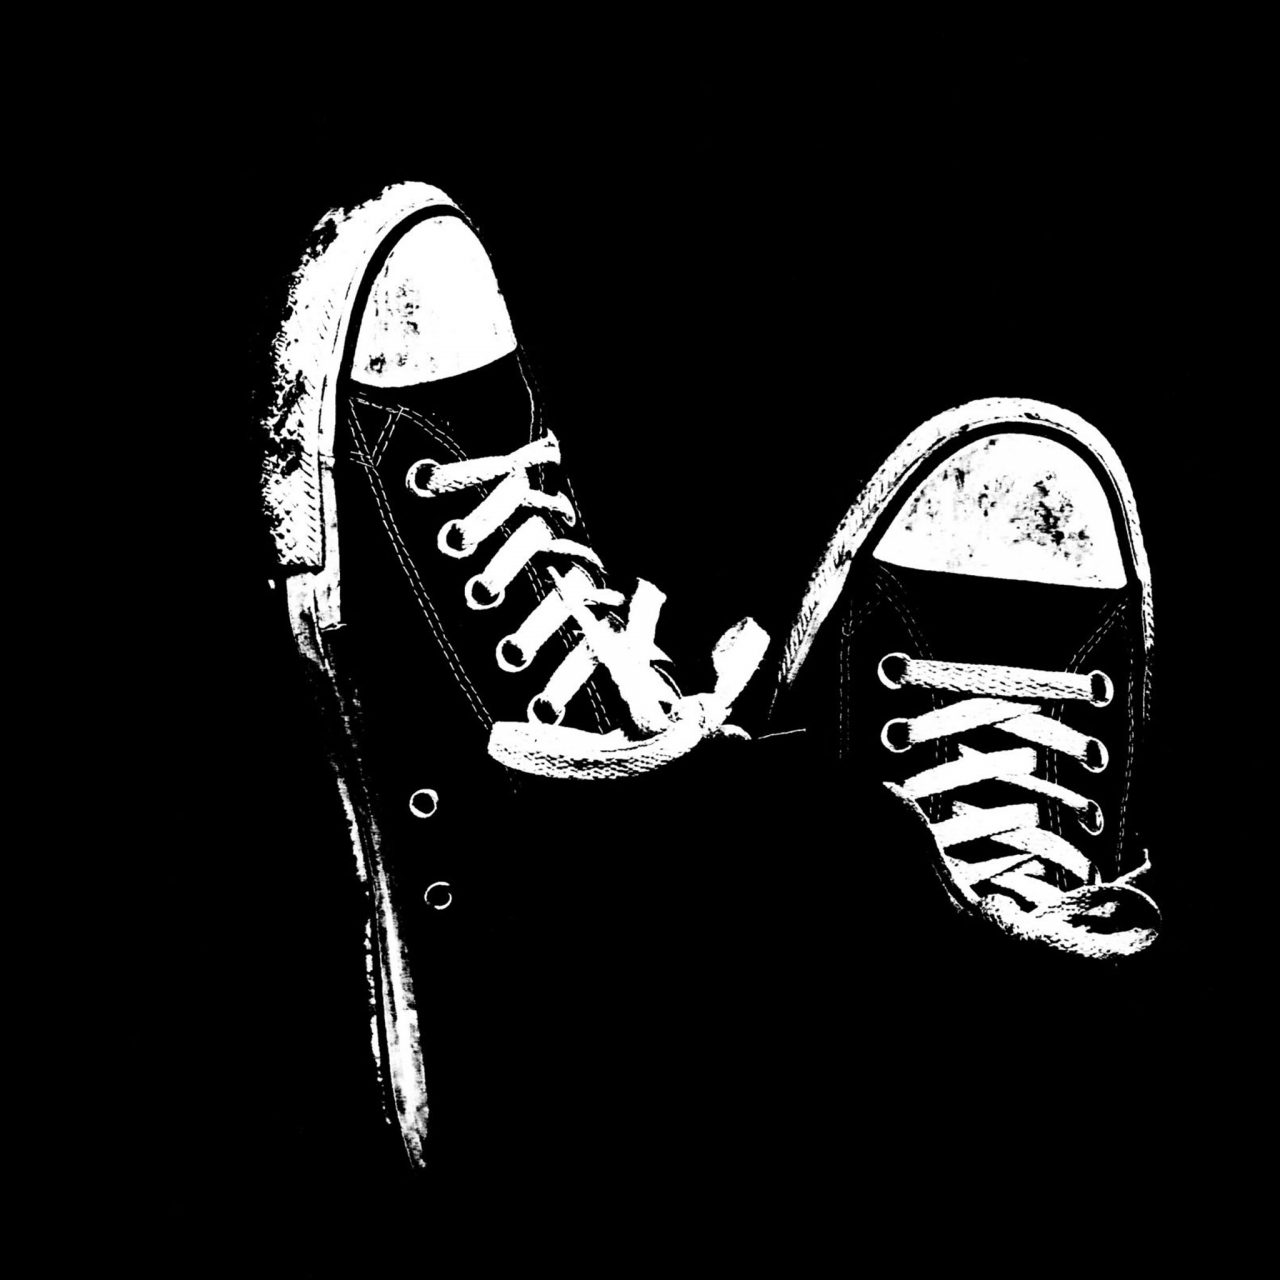 Sneakers Black And White